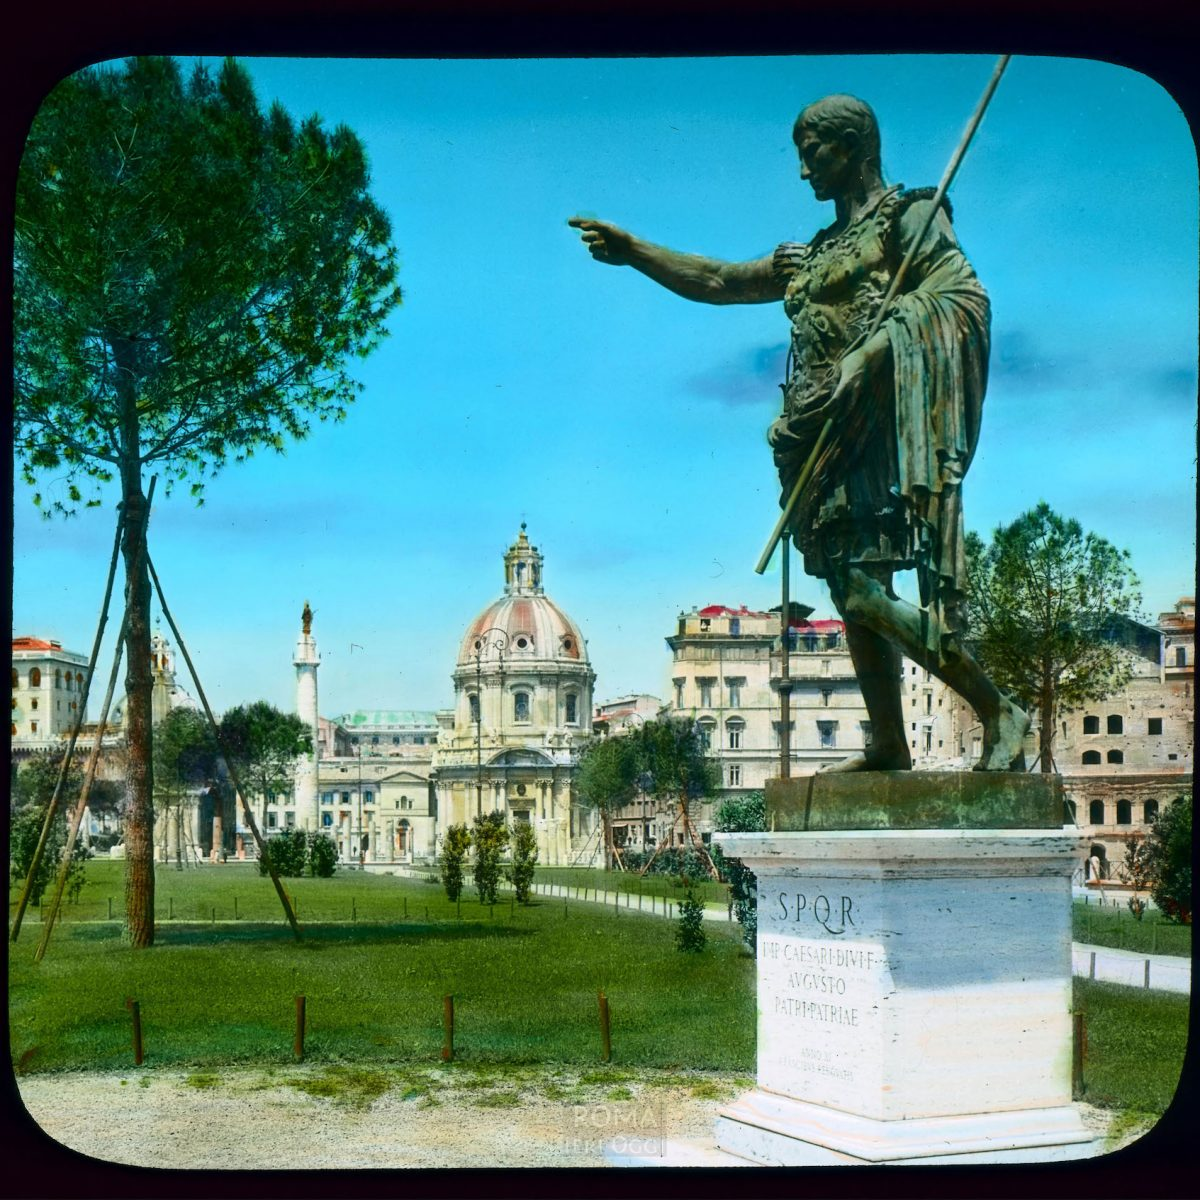 Rome. Via dei Fori Imperiali: view of bronze sculpture of Augustus Caesar View in tinted lantern slide, ca. 1931-1938